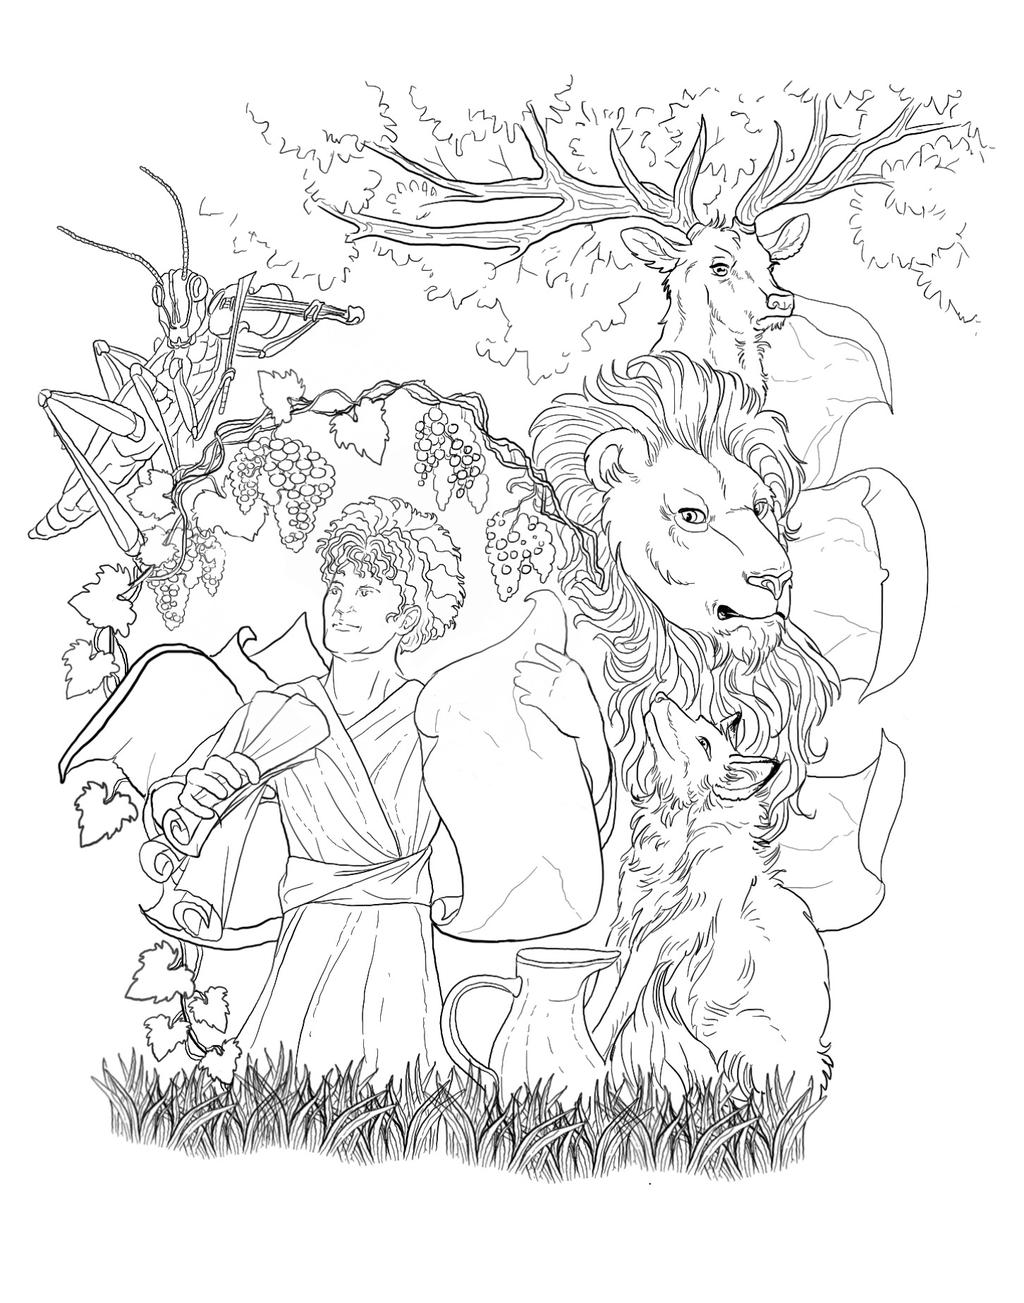 Aesop's Fables LineART by bonbon3272